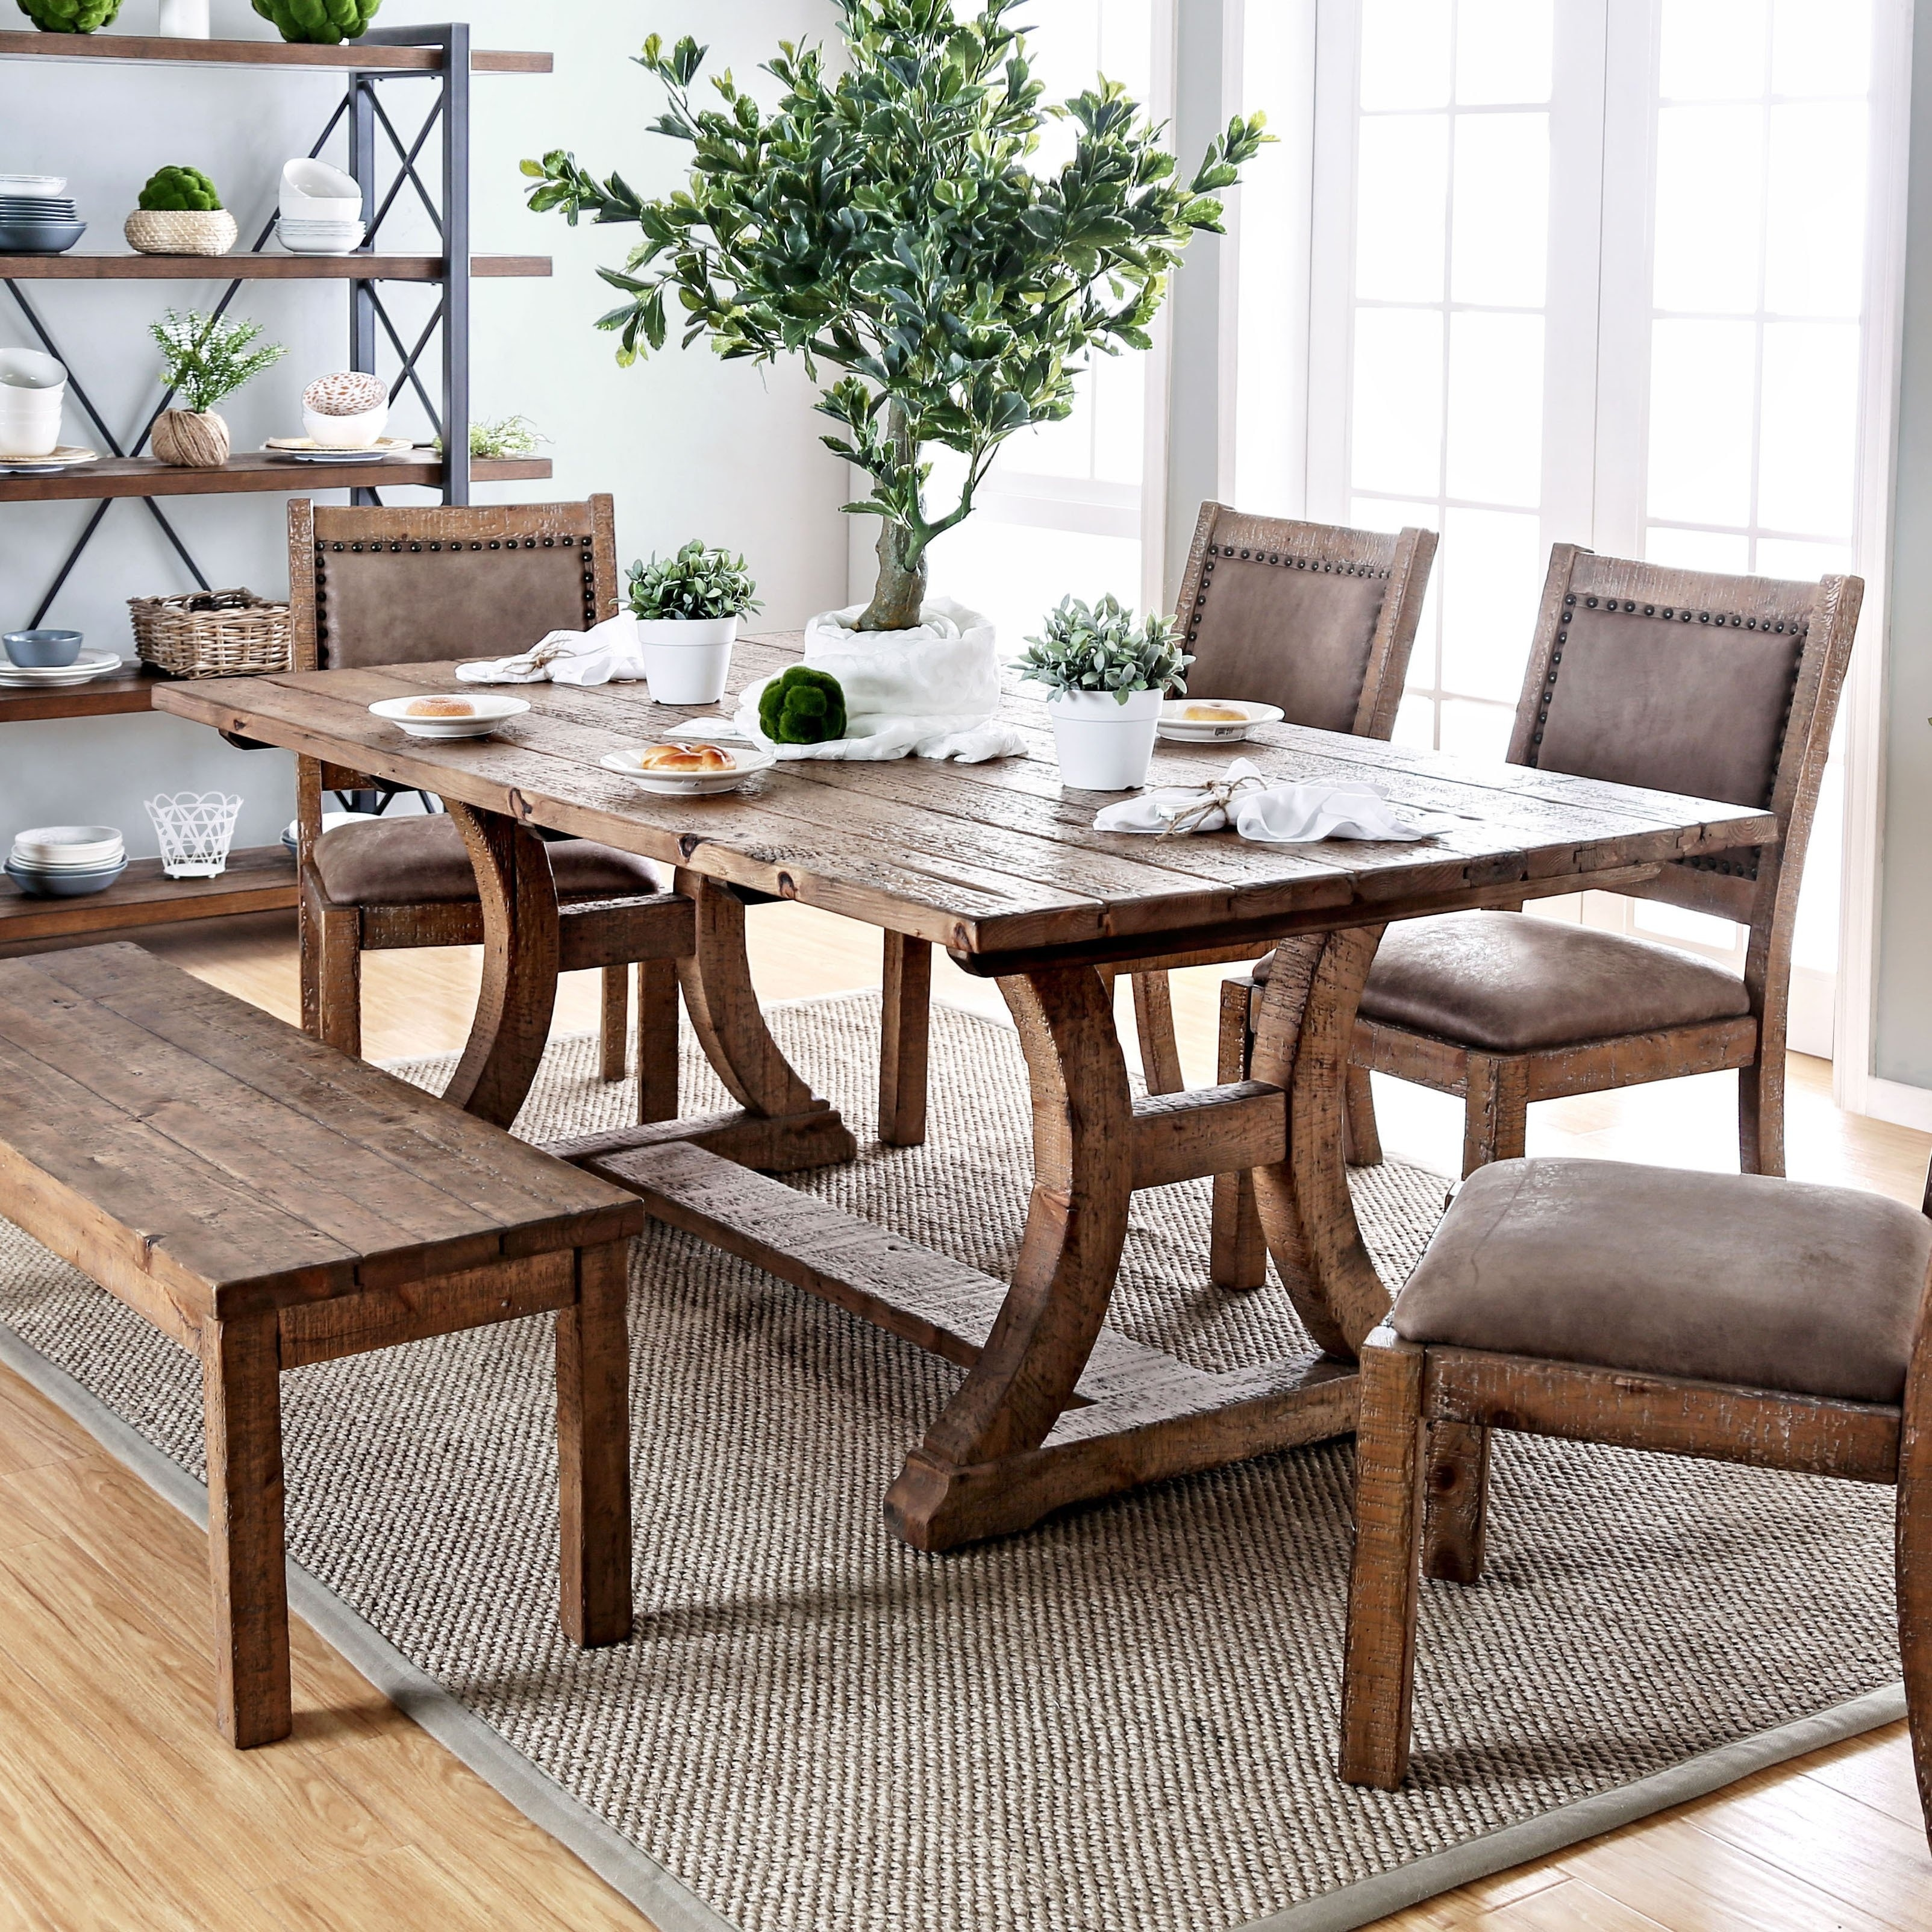 Shop Furniture Of America Sail Rustic Pine Solid Wood Dining Table On Sale Overstock 11149919